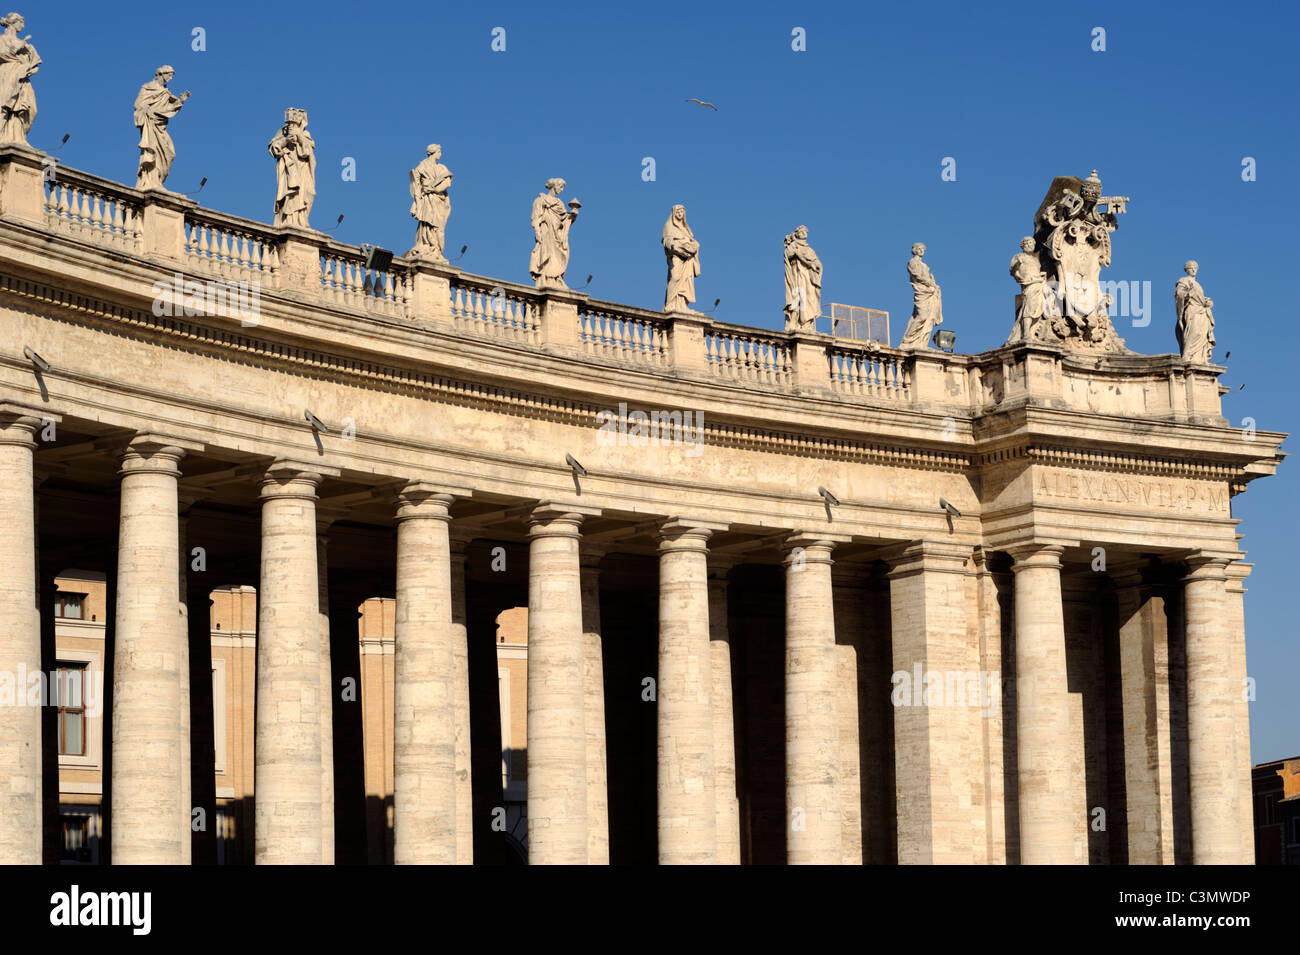 italy, rome, st peter's square, bernini colonnade, statues - Stock Image